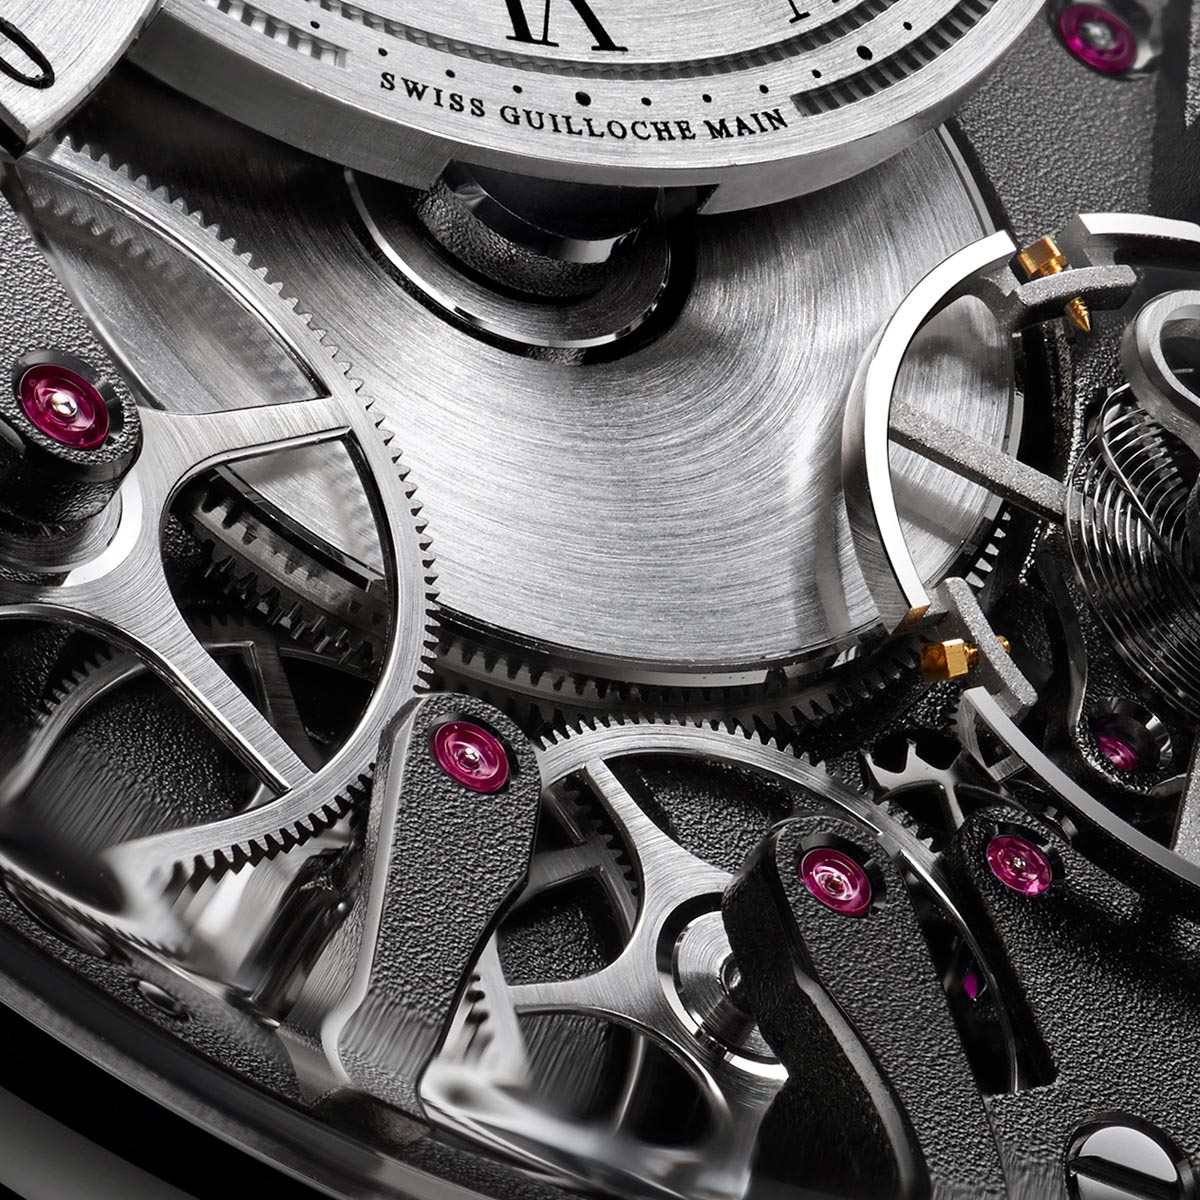 The Watch Quote: Photo - Breguet Tradition Automatique Seconde Rétrograde 7097